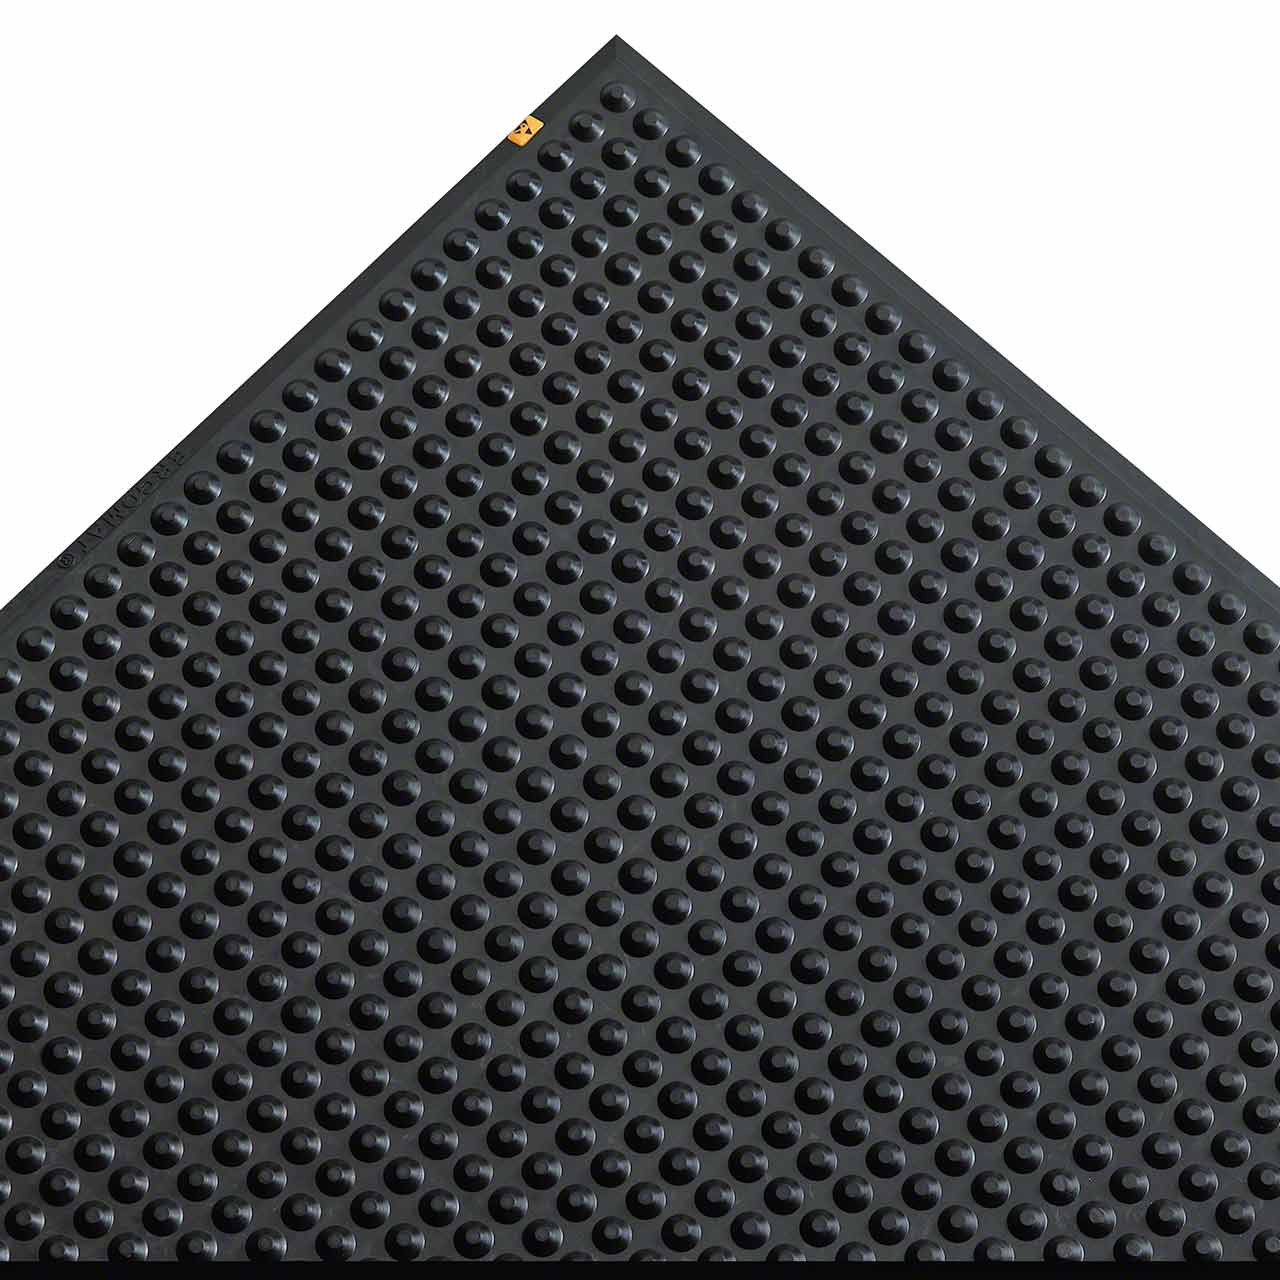 Ergomat Nitril ESD/Conductive anti-fatigue mat is beveled on each side